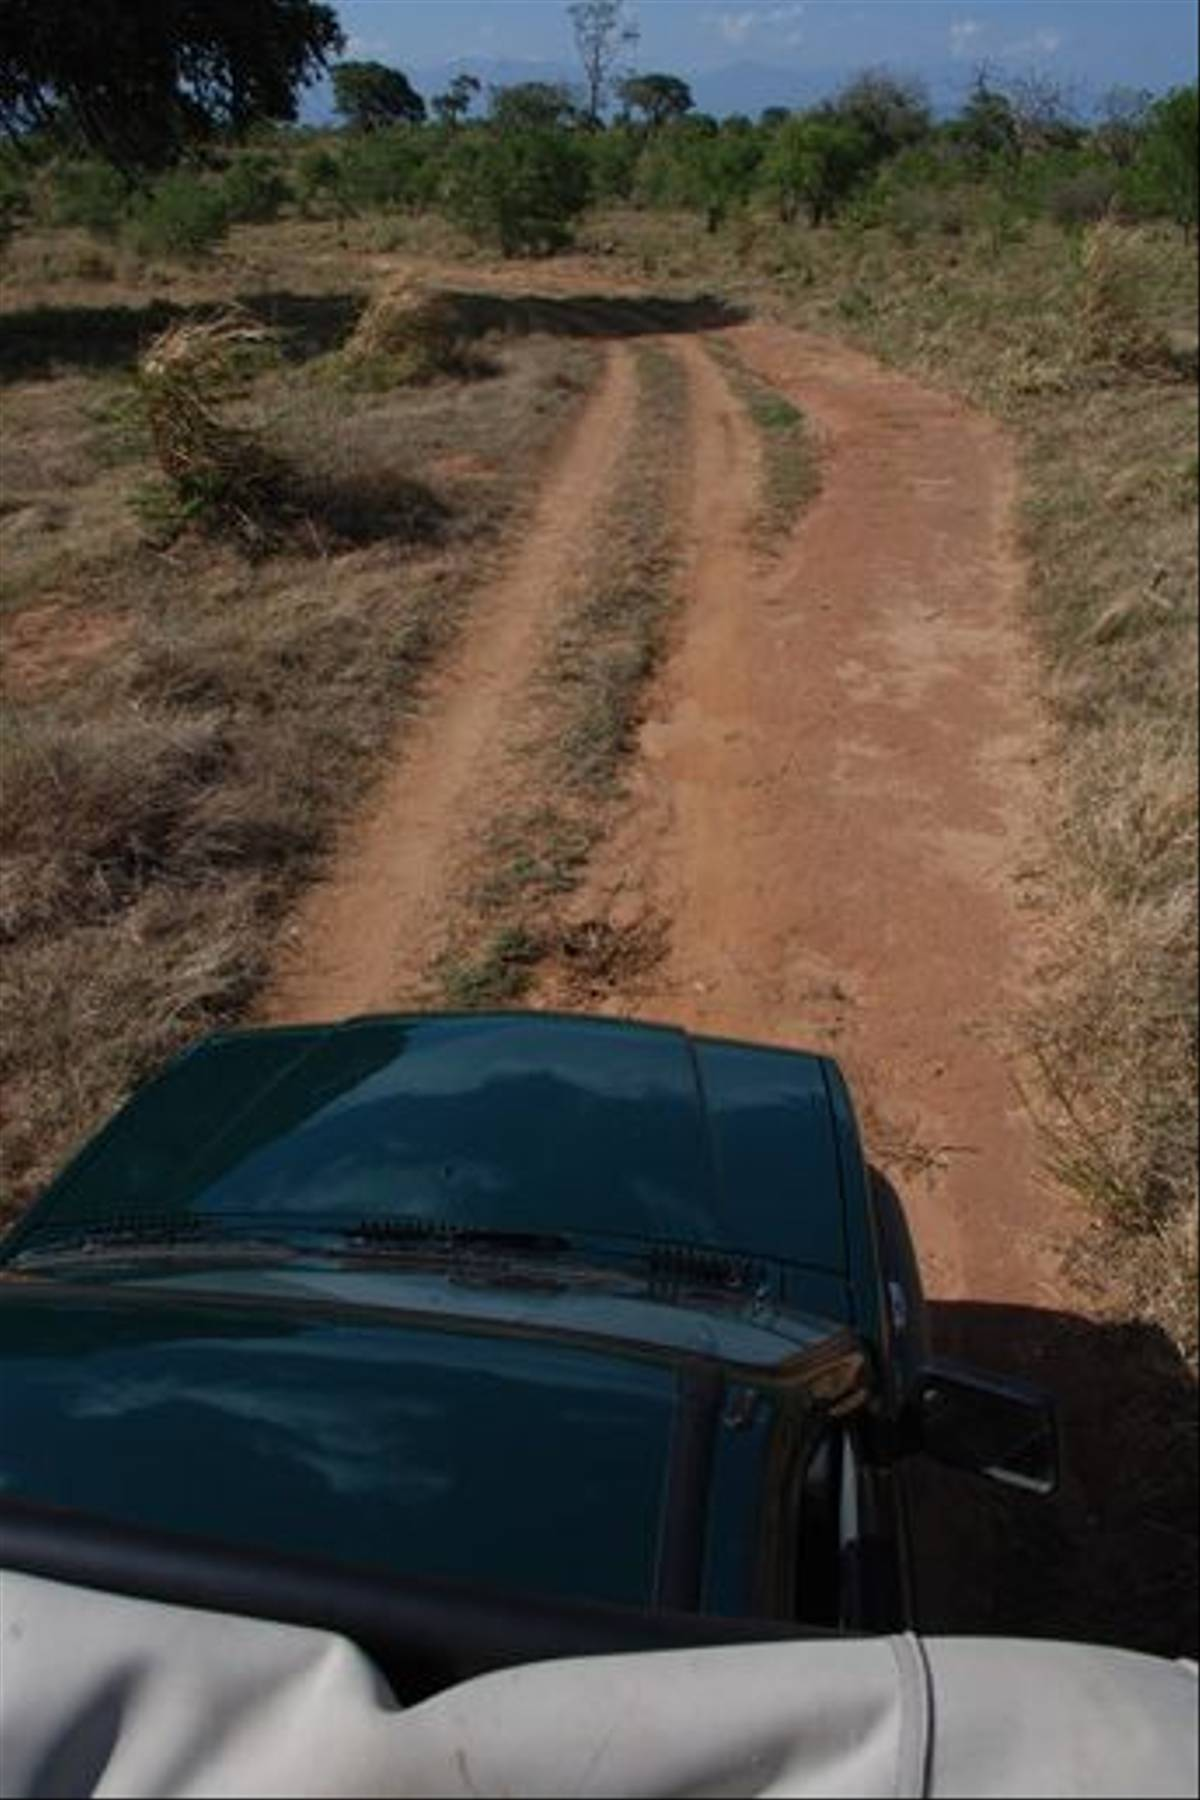 Jeep safari in Uda Walawe (Thomas Mills)